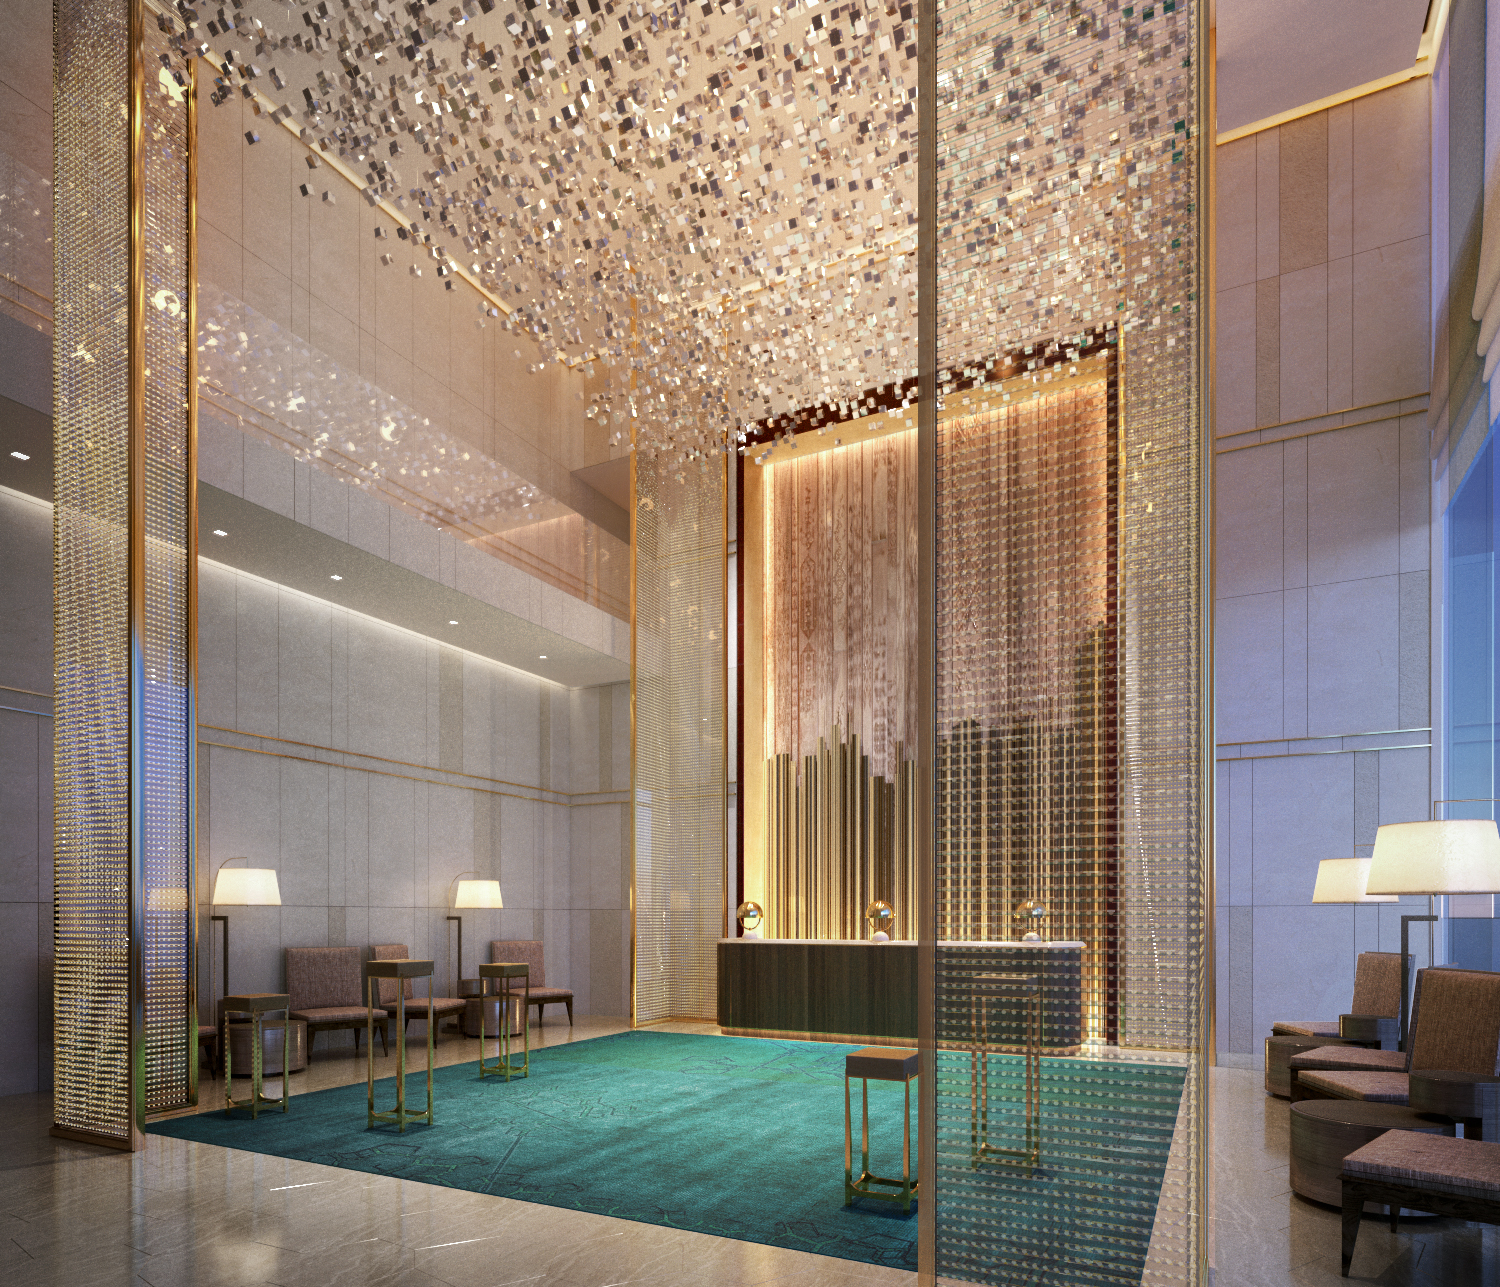 Langham hospitality group introduces new luxury hotel in dubai for Small luxury hotel group